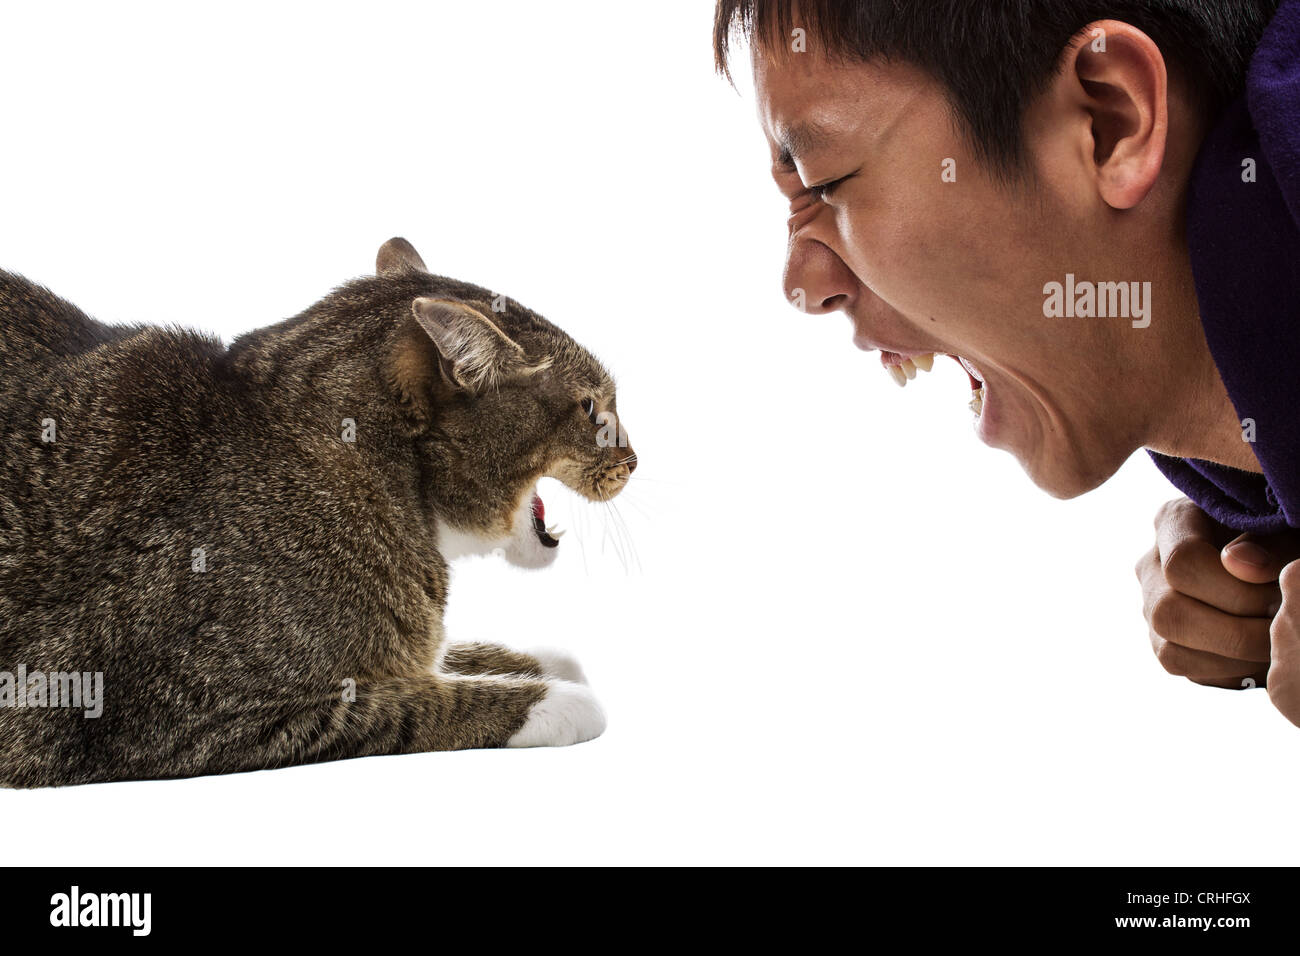 Angry gray tabby cat snarls at man on white background - Stock Image